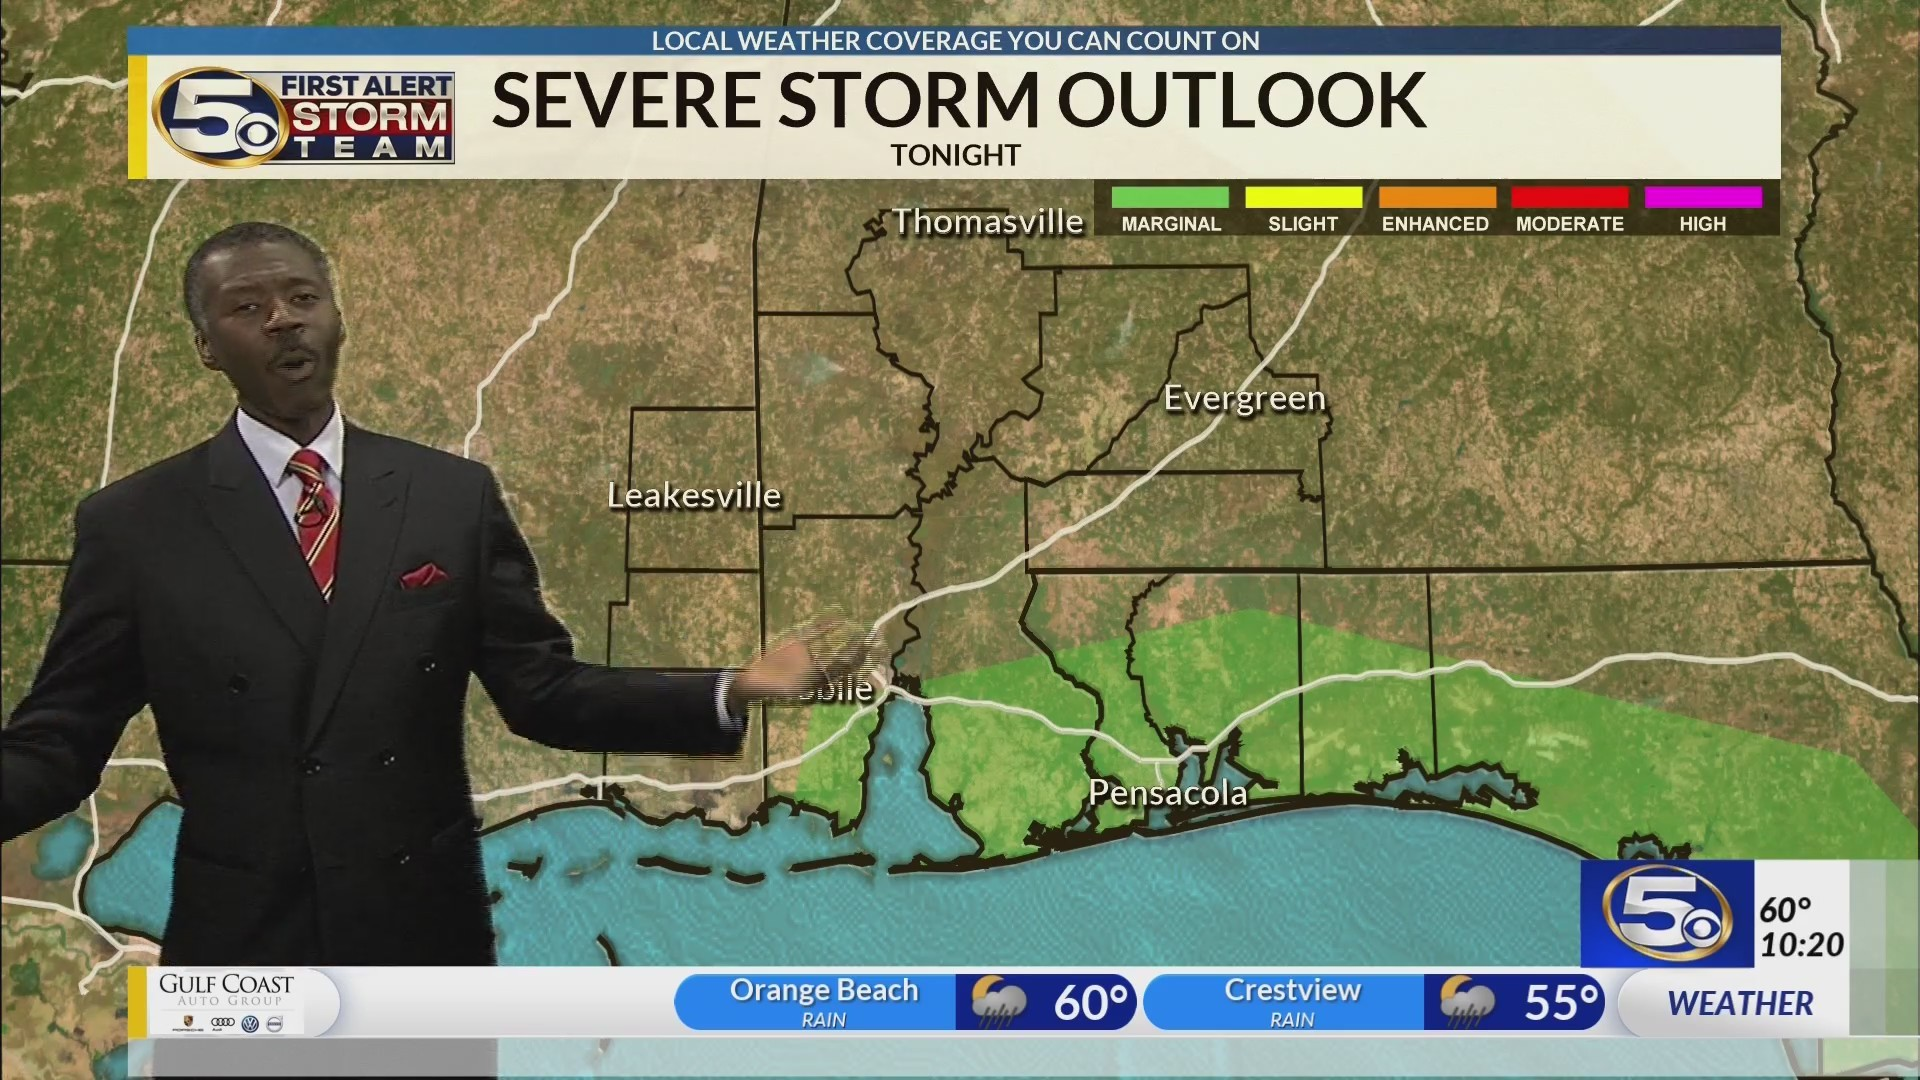 Small threat of strong storm